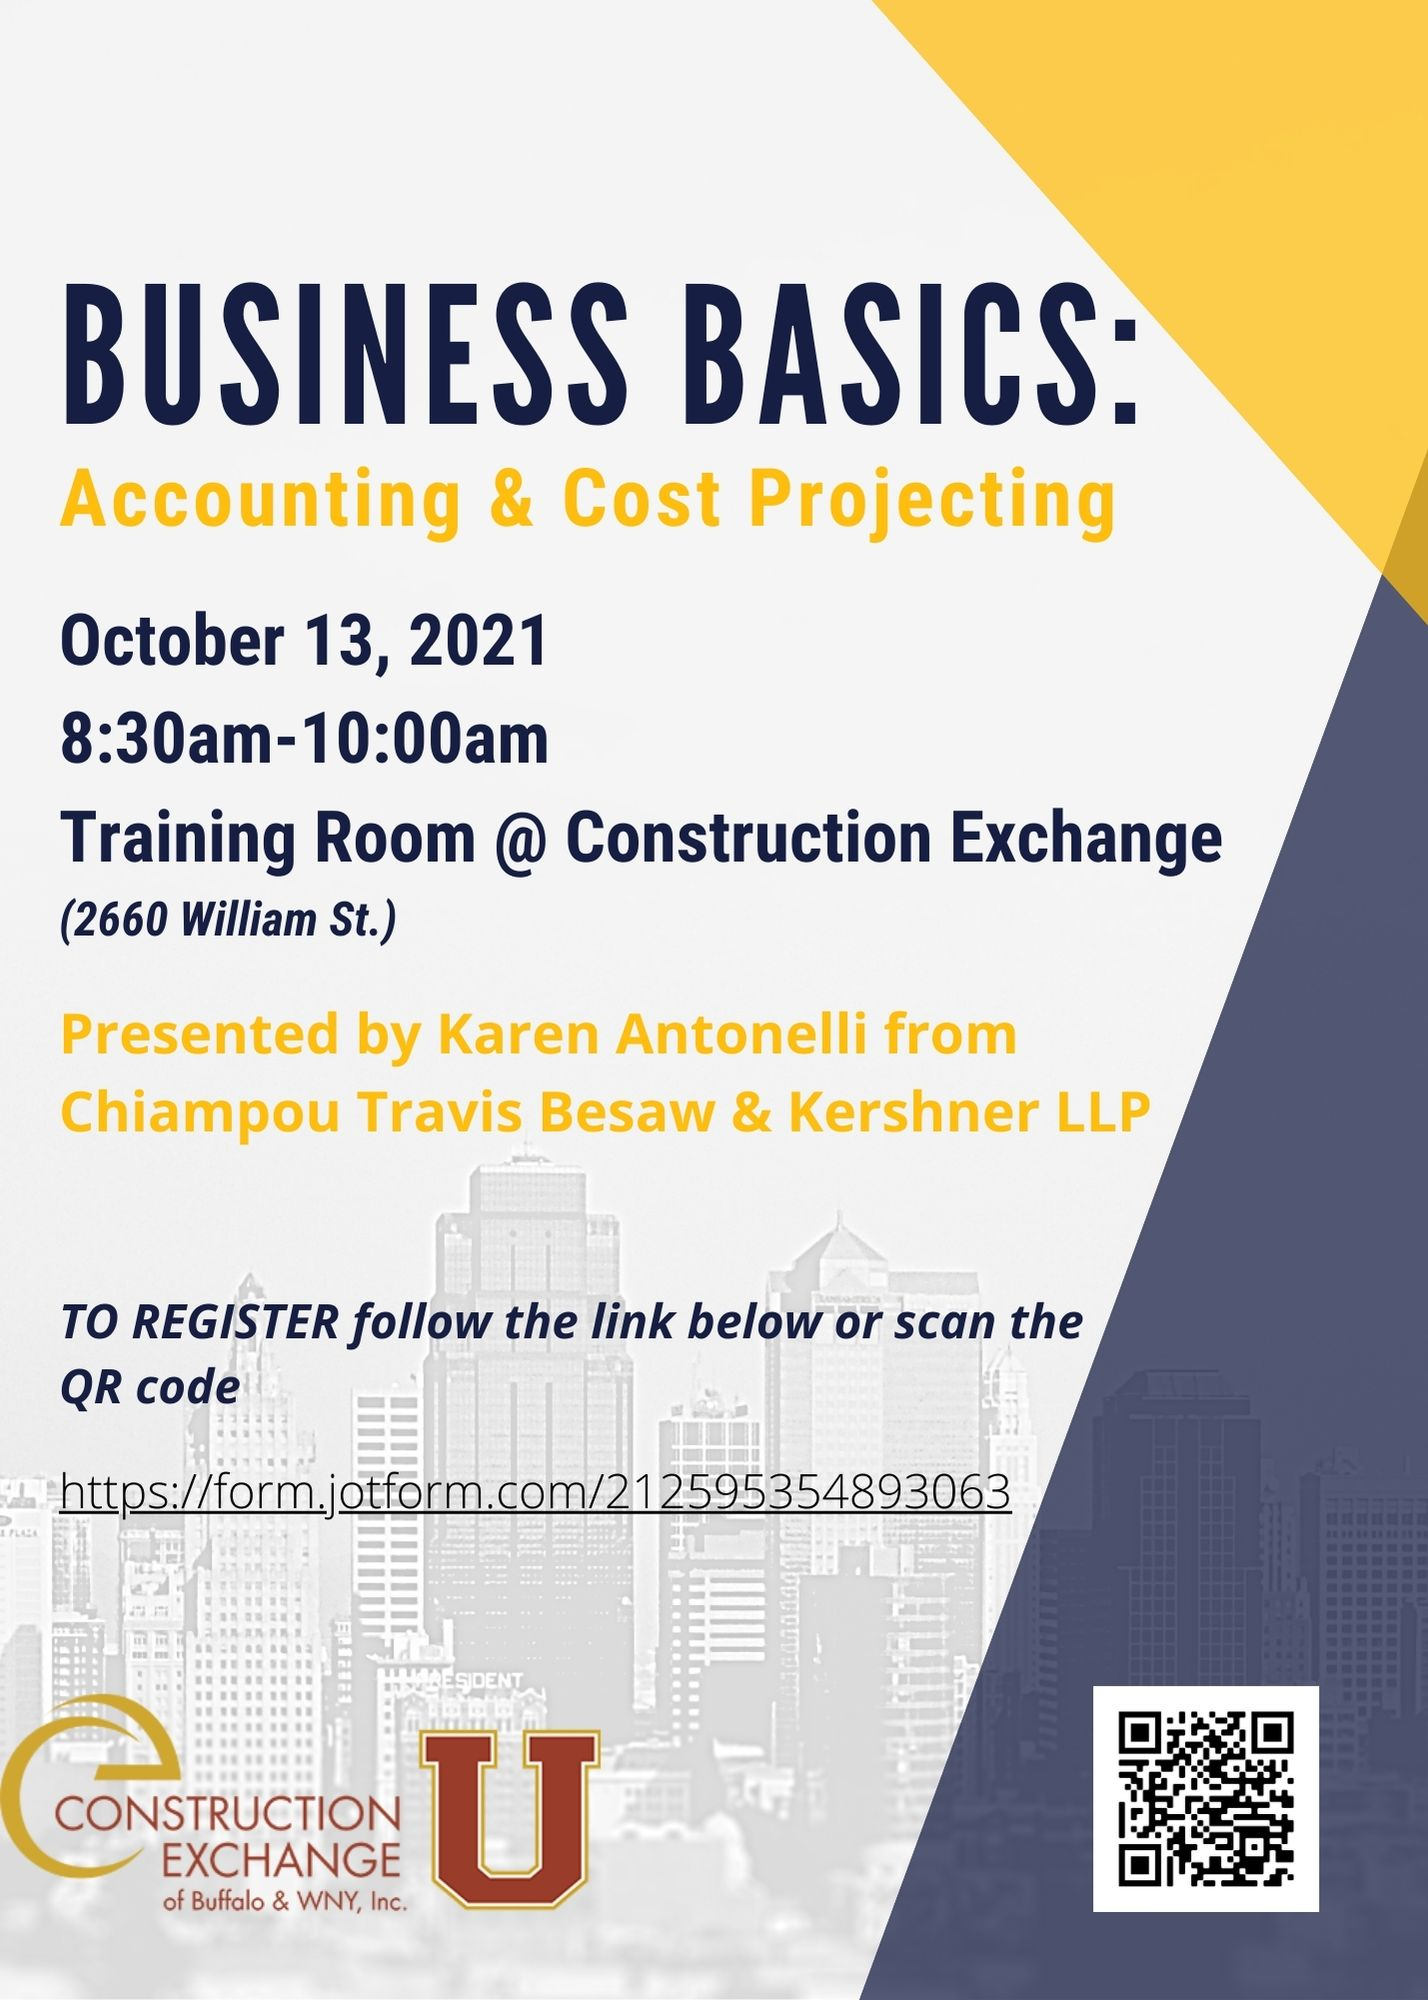 Business Basics: Accounting & Cost Projecting